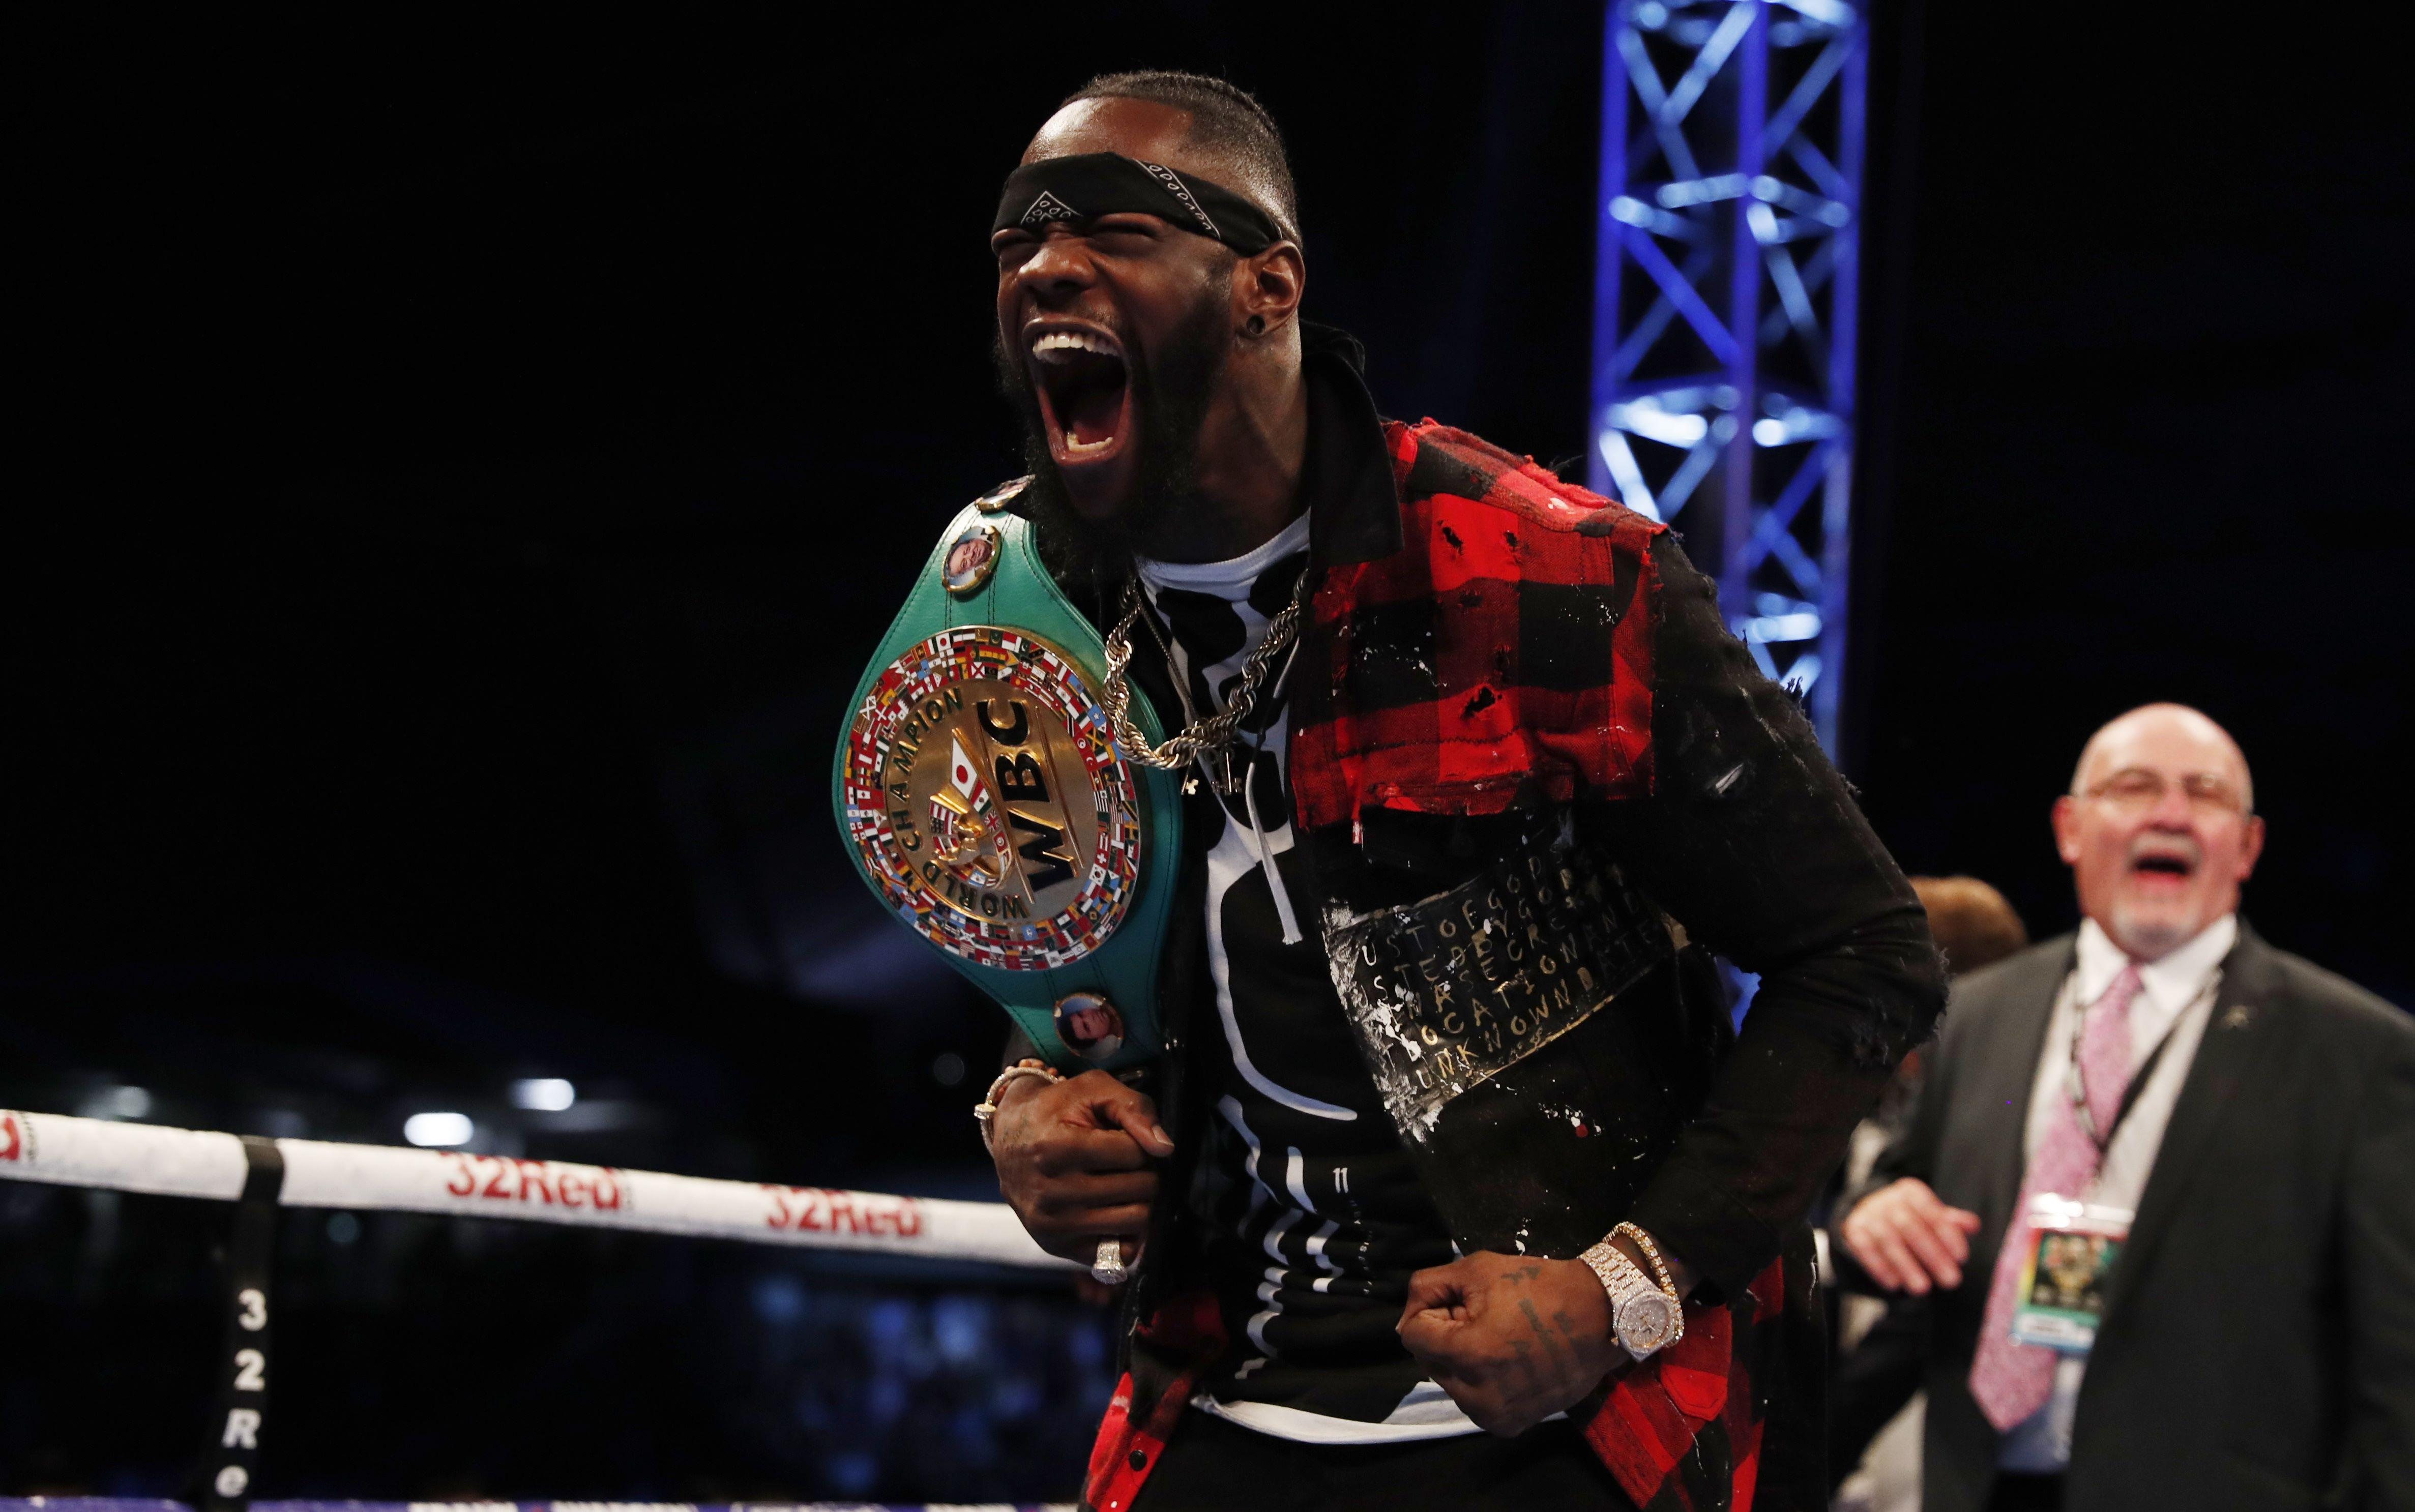 Wilder, 32, has racked up 40 wins with 39 knockout victories since turning professional